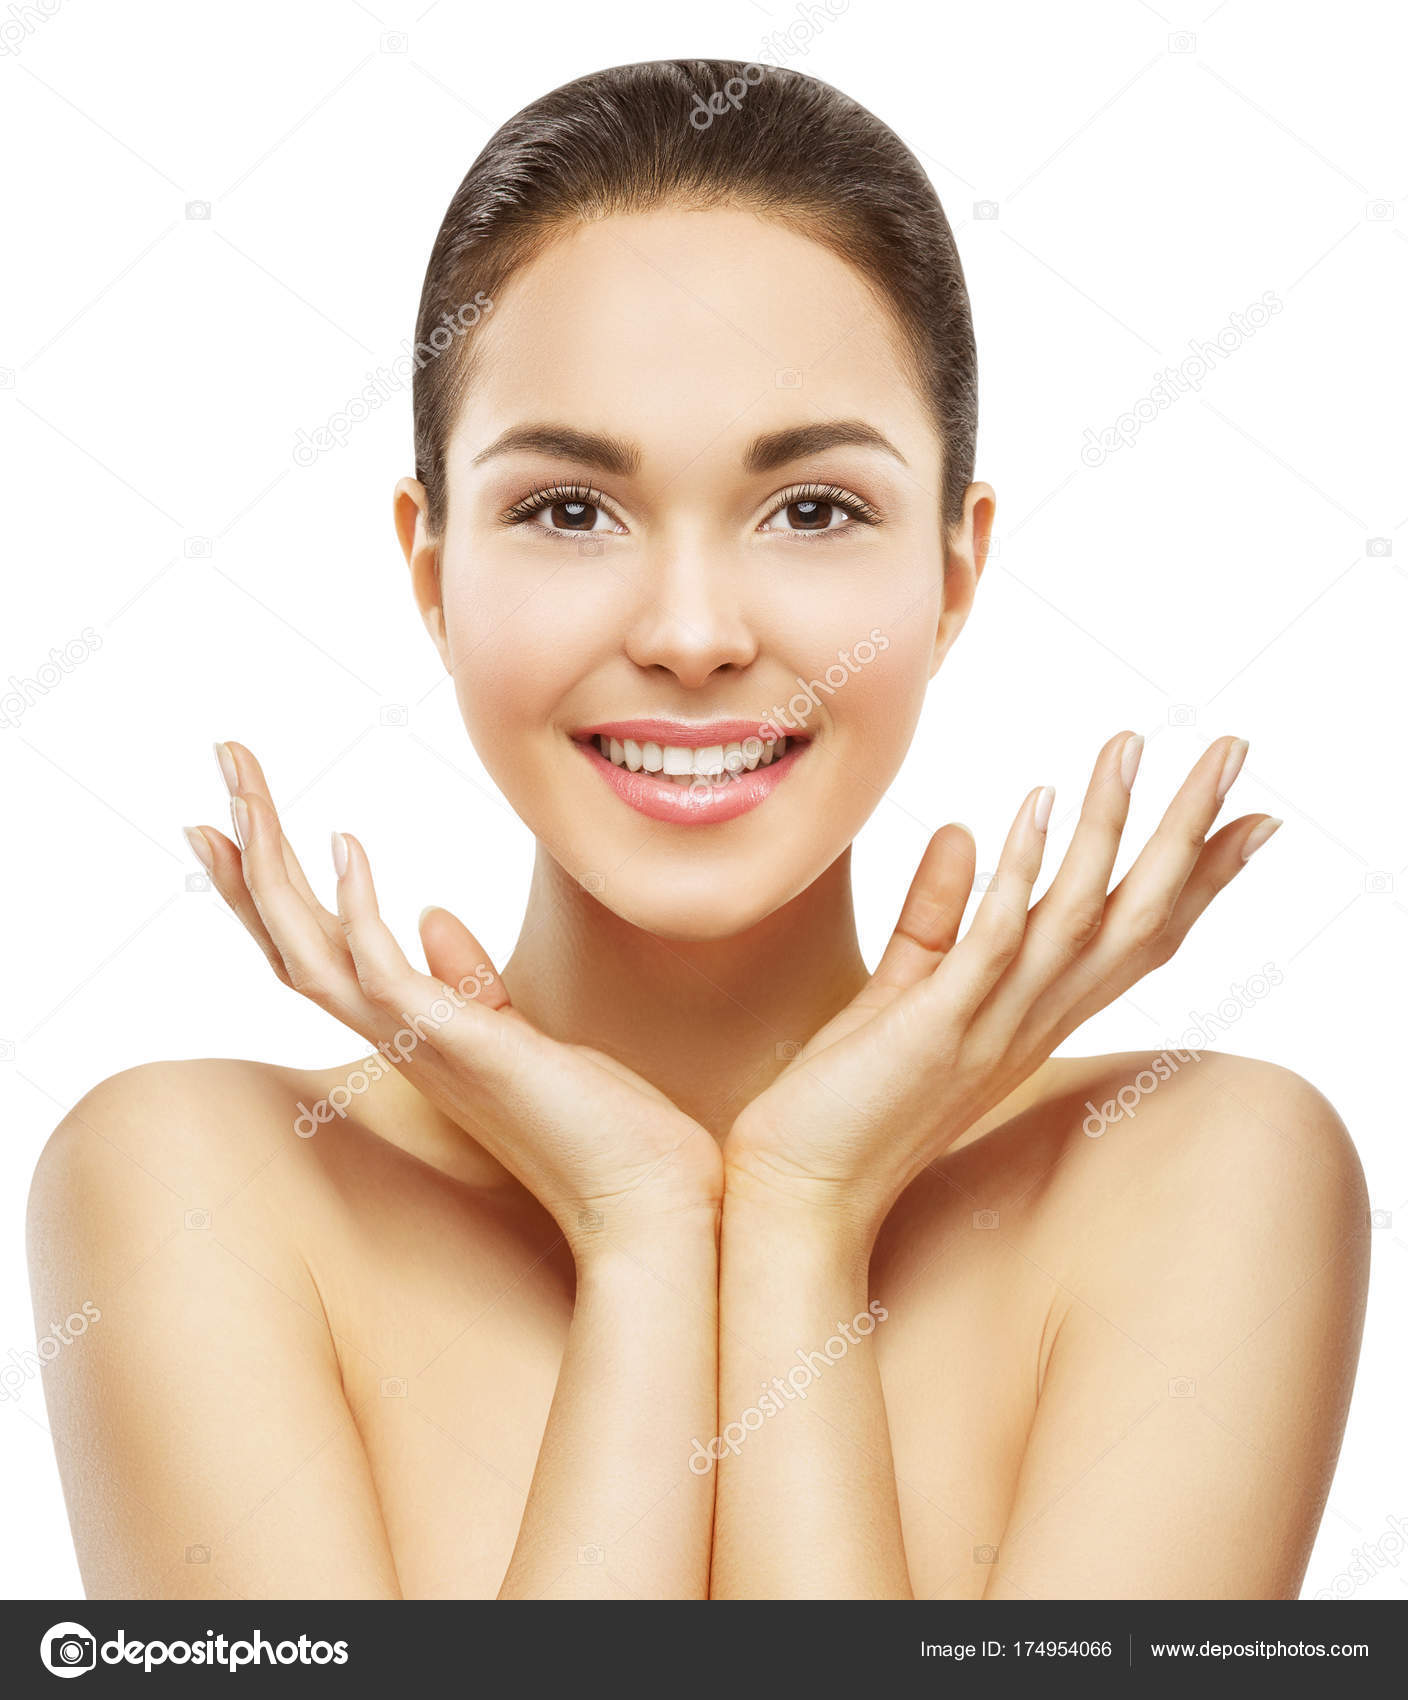 Skin Care Model: Woman Face And Hands Beauty, Skin Care Makeup, Beautiful